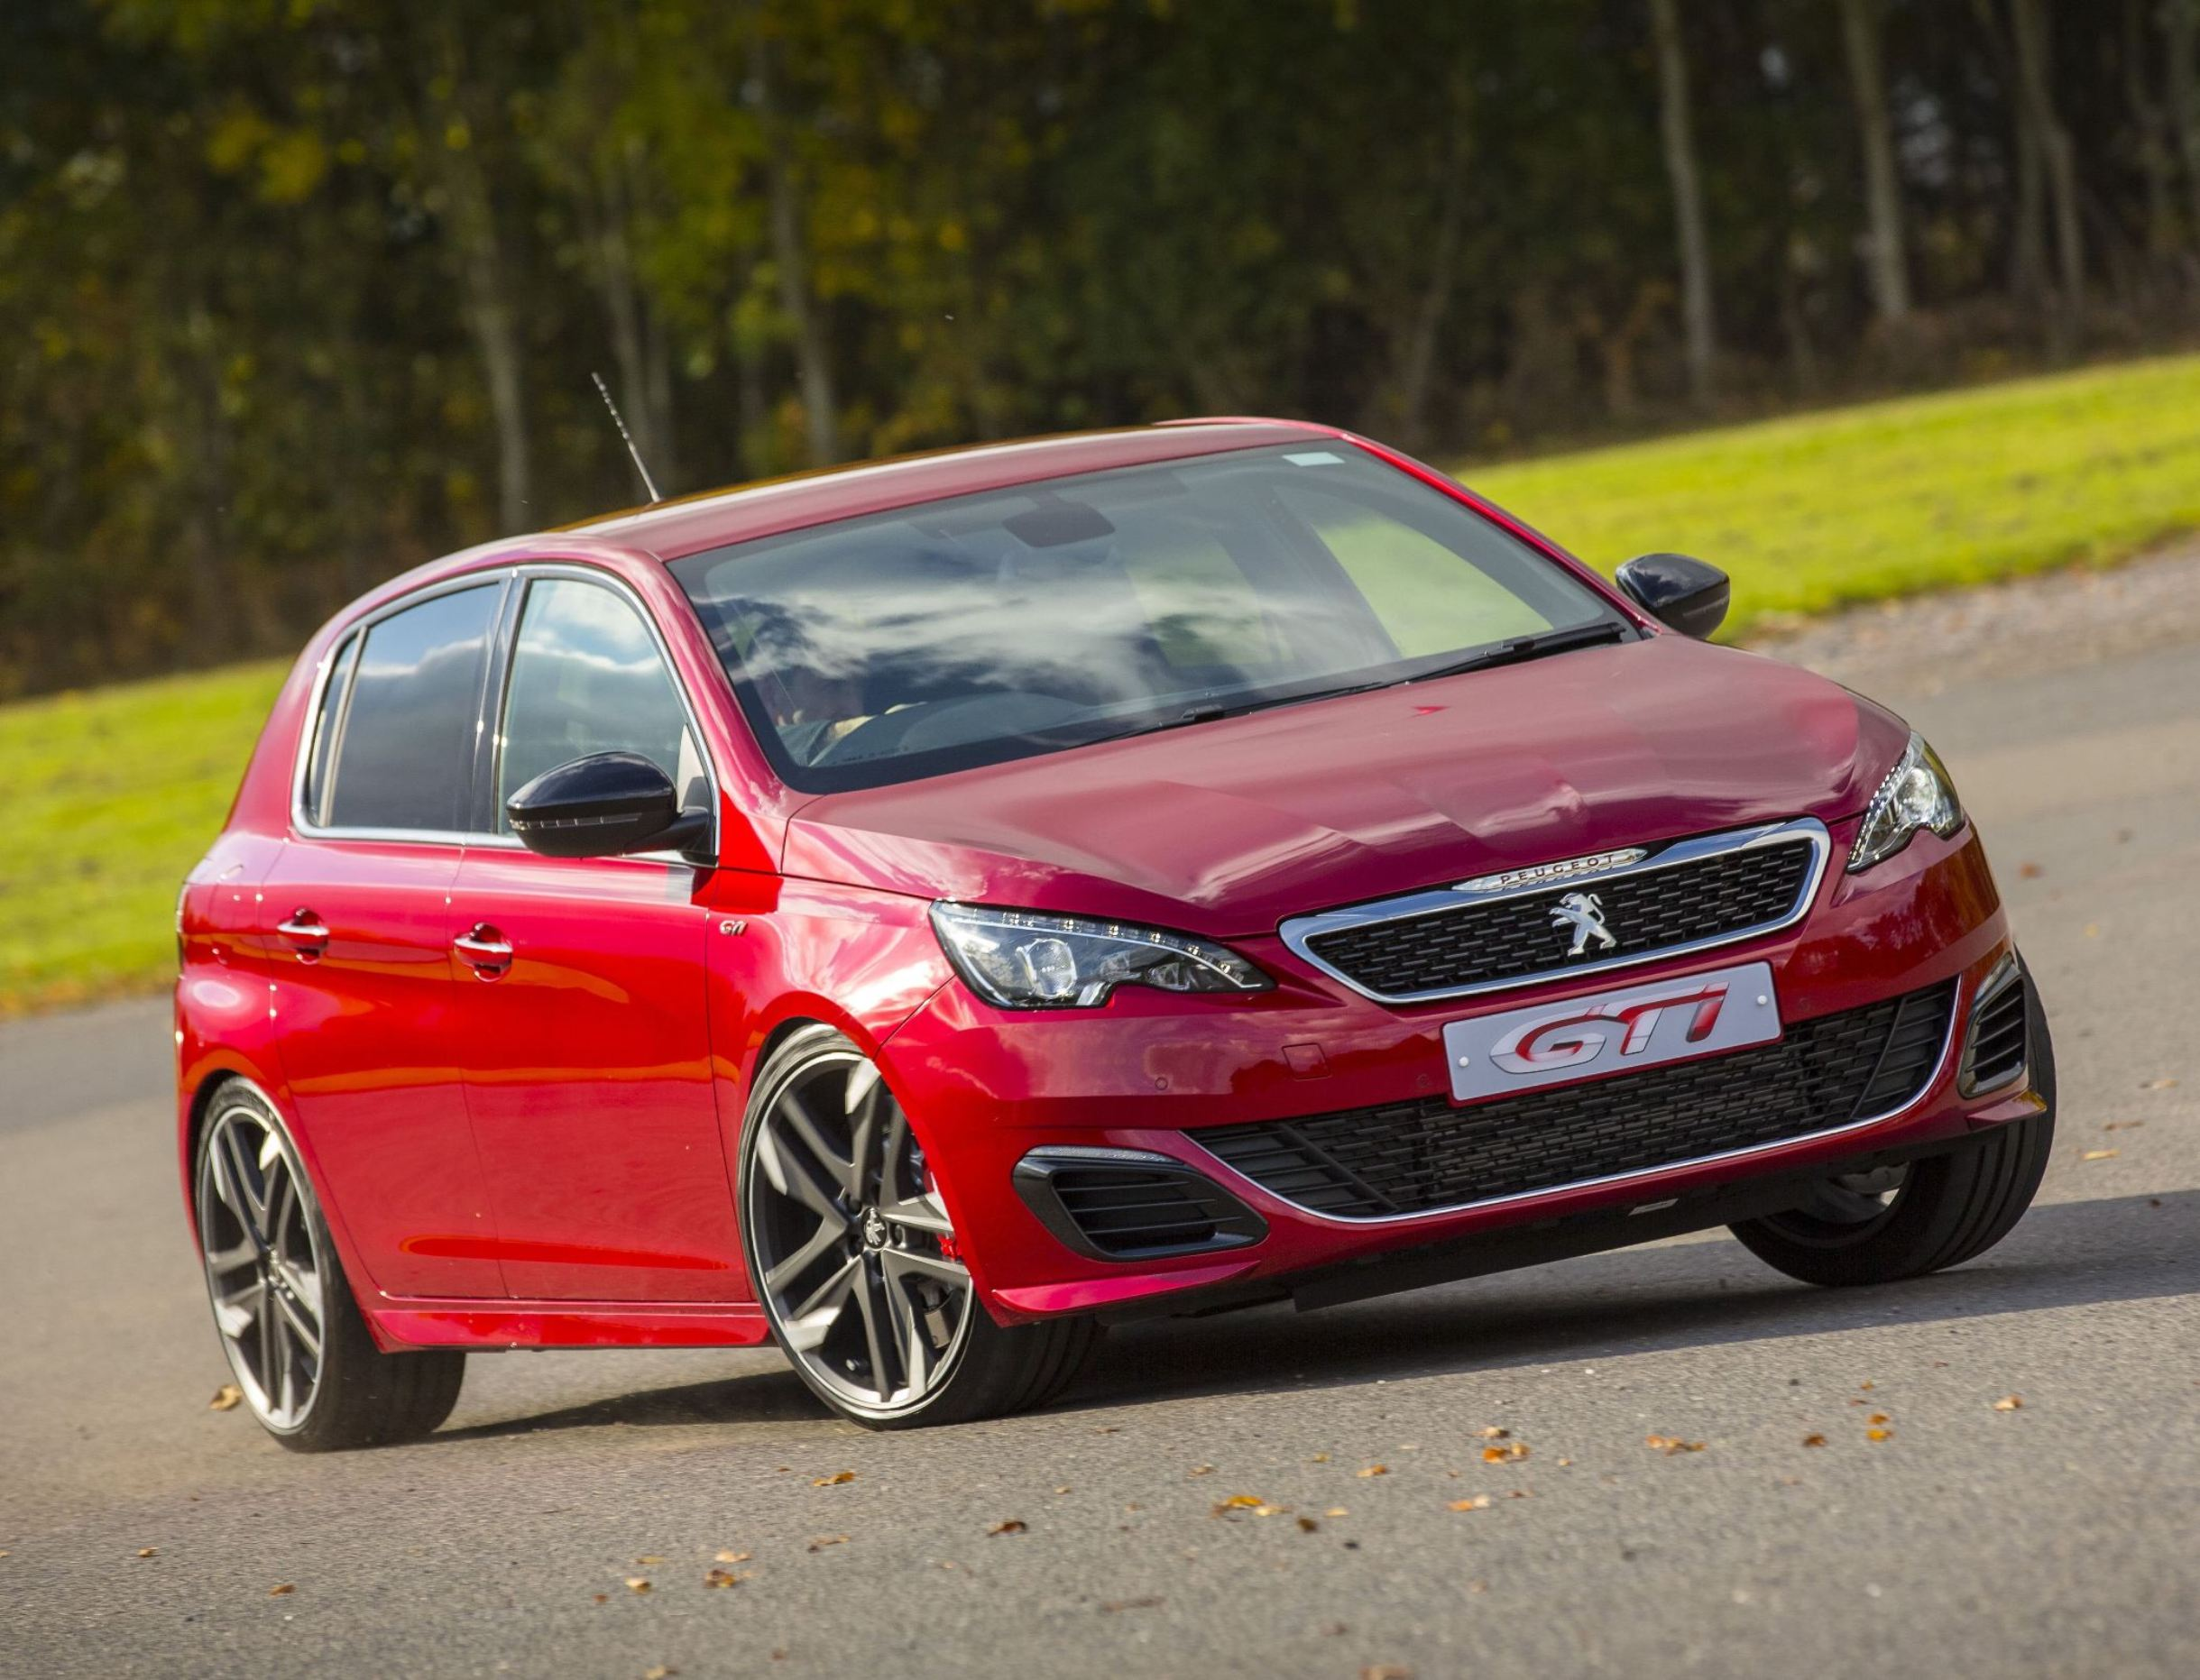 New Peugeot 308 GTi from Peugeot Sport – Road Test